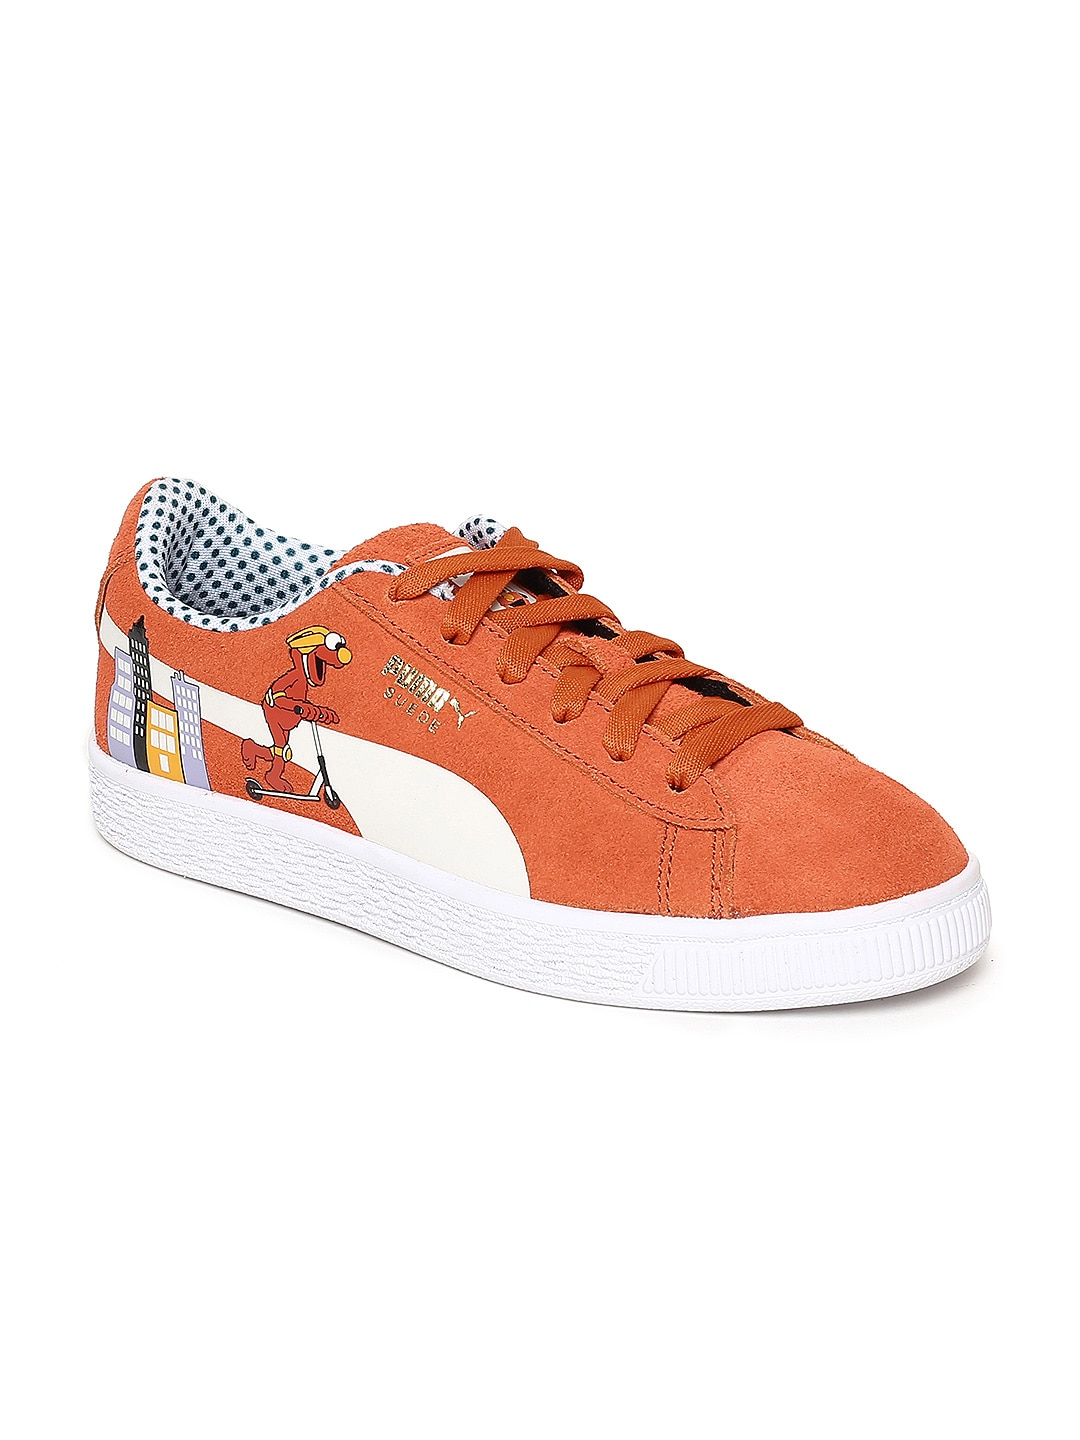 Puma Kids Orange Sesame Street Suede Sneakers